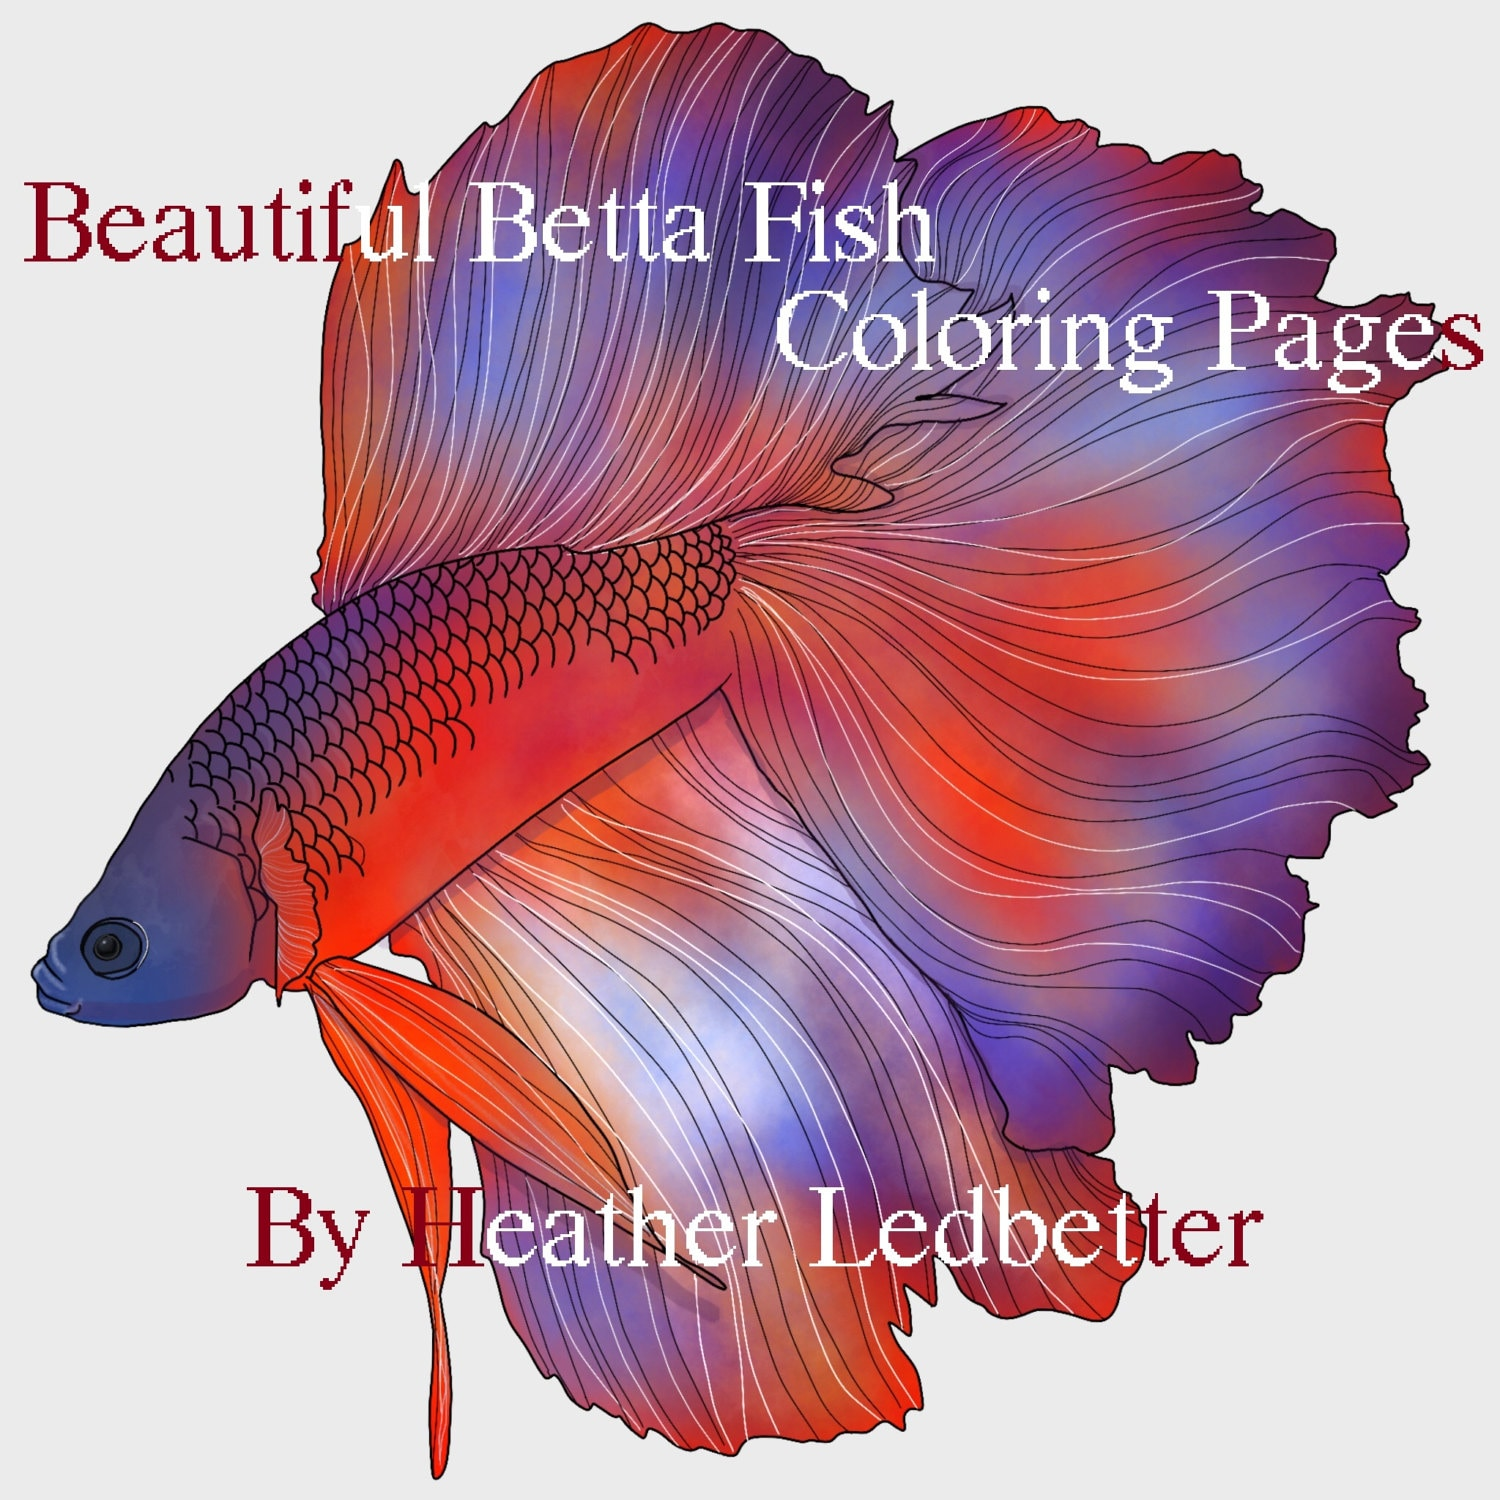 Beautiful Betta Fish Coloring Pages 6 images